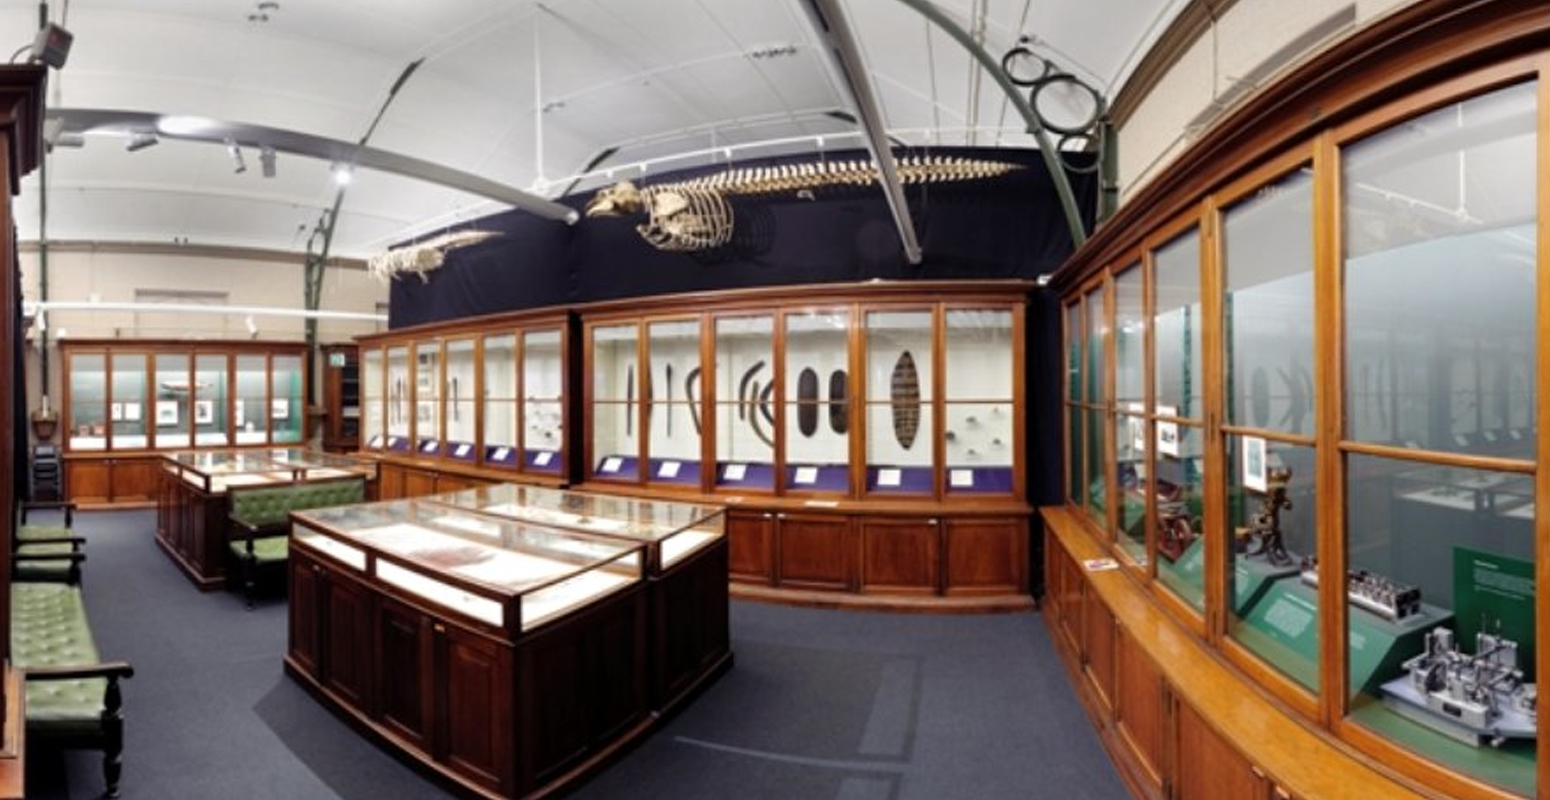 Macleay Museum(考古学)